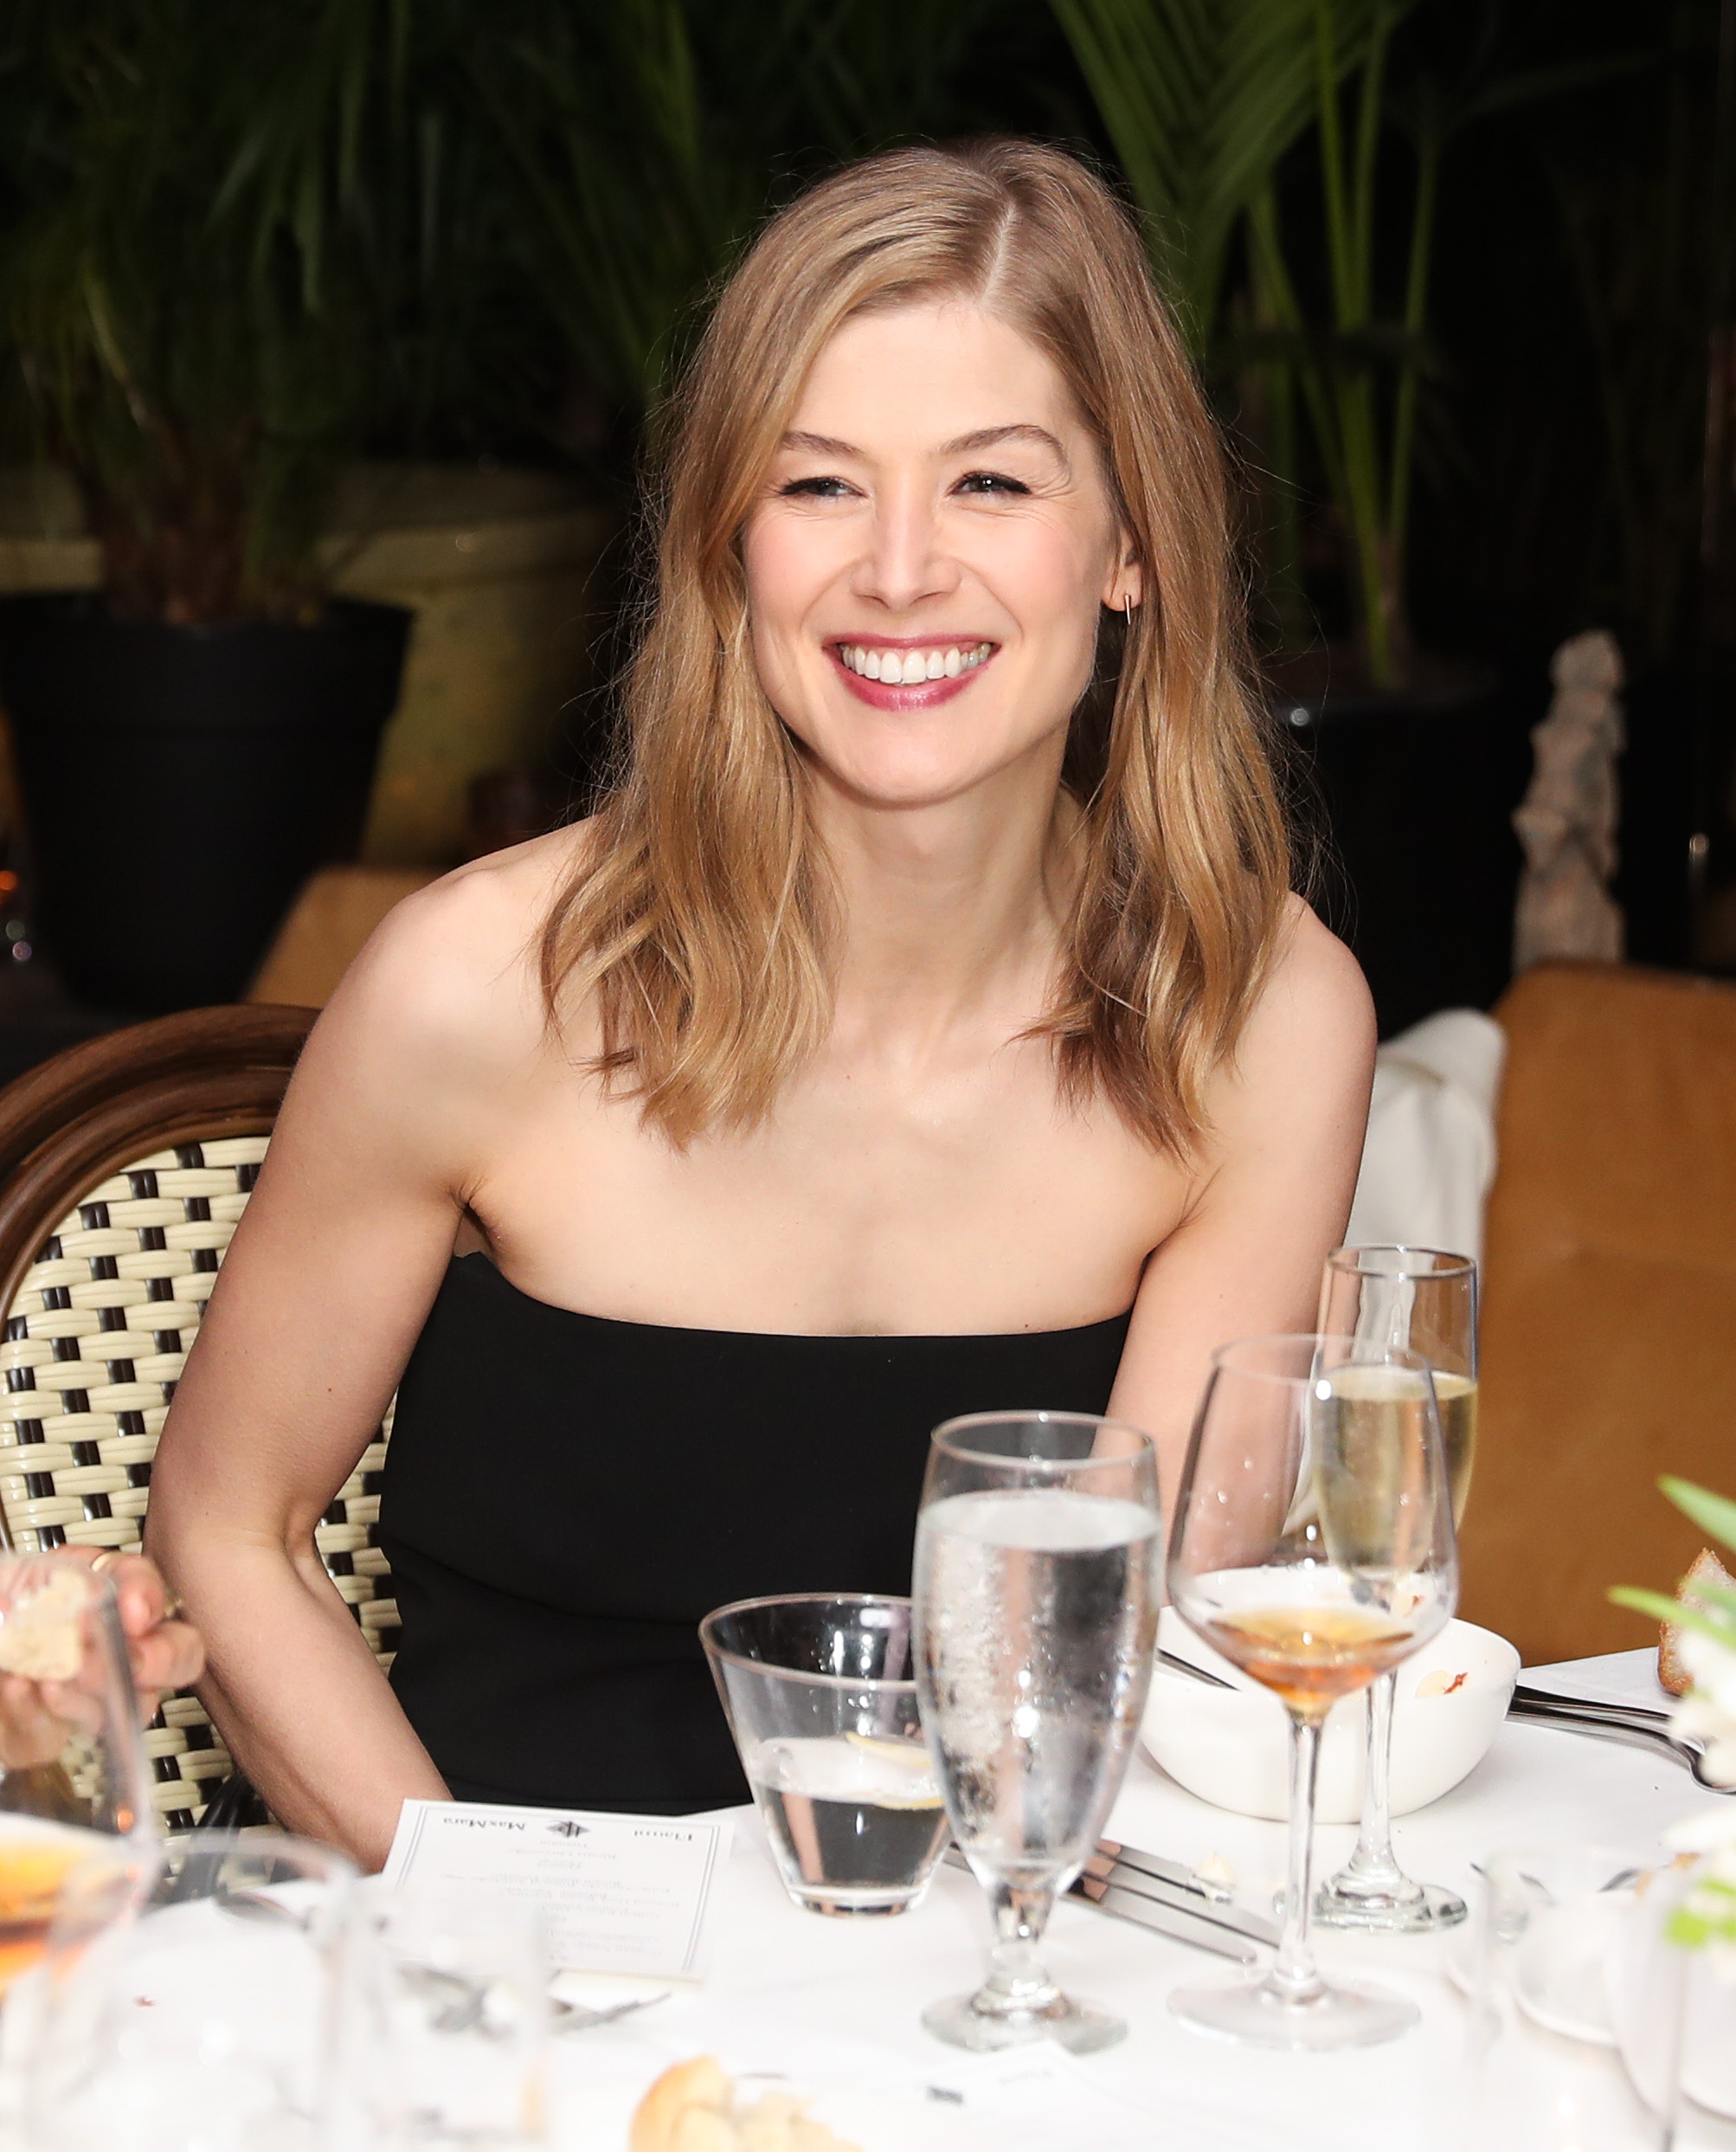 Rosamund PikeMax Mara x Flaunt Dinner, Los Angeles, USA - 17 Mar 2017